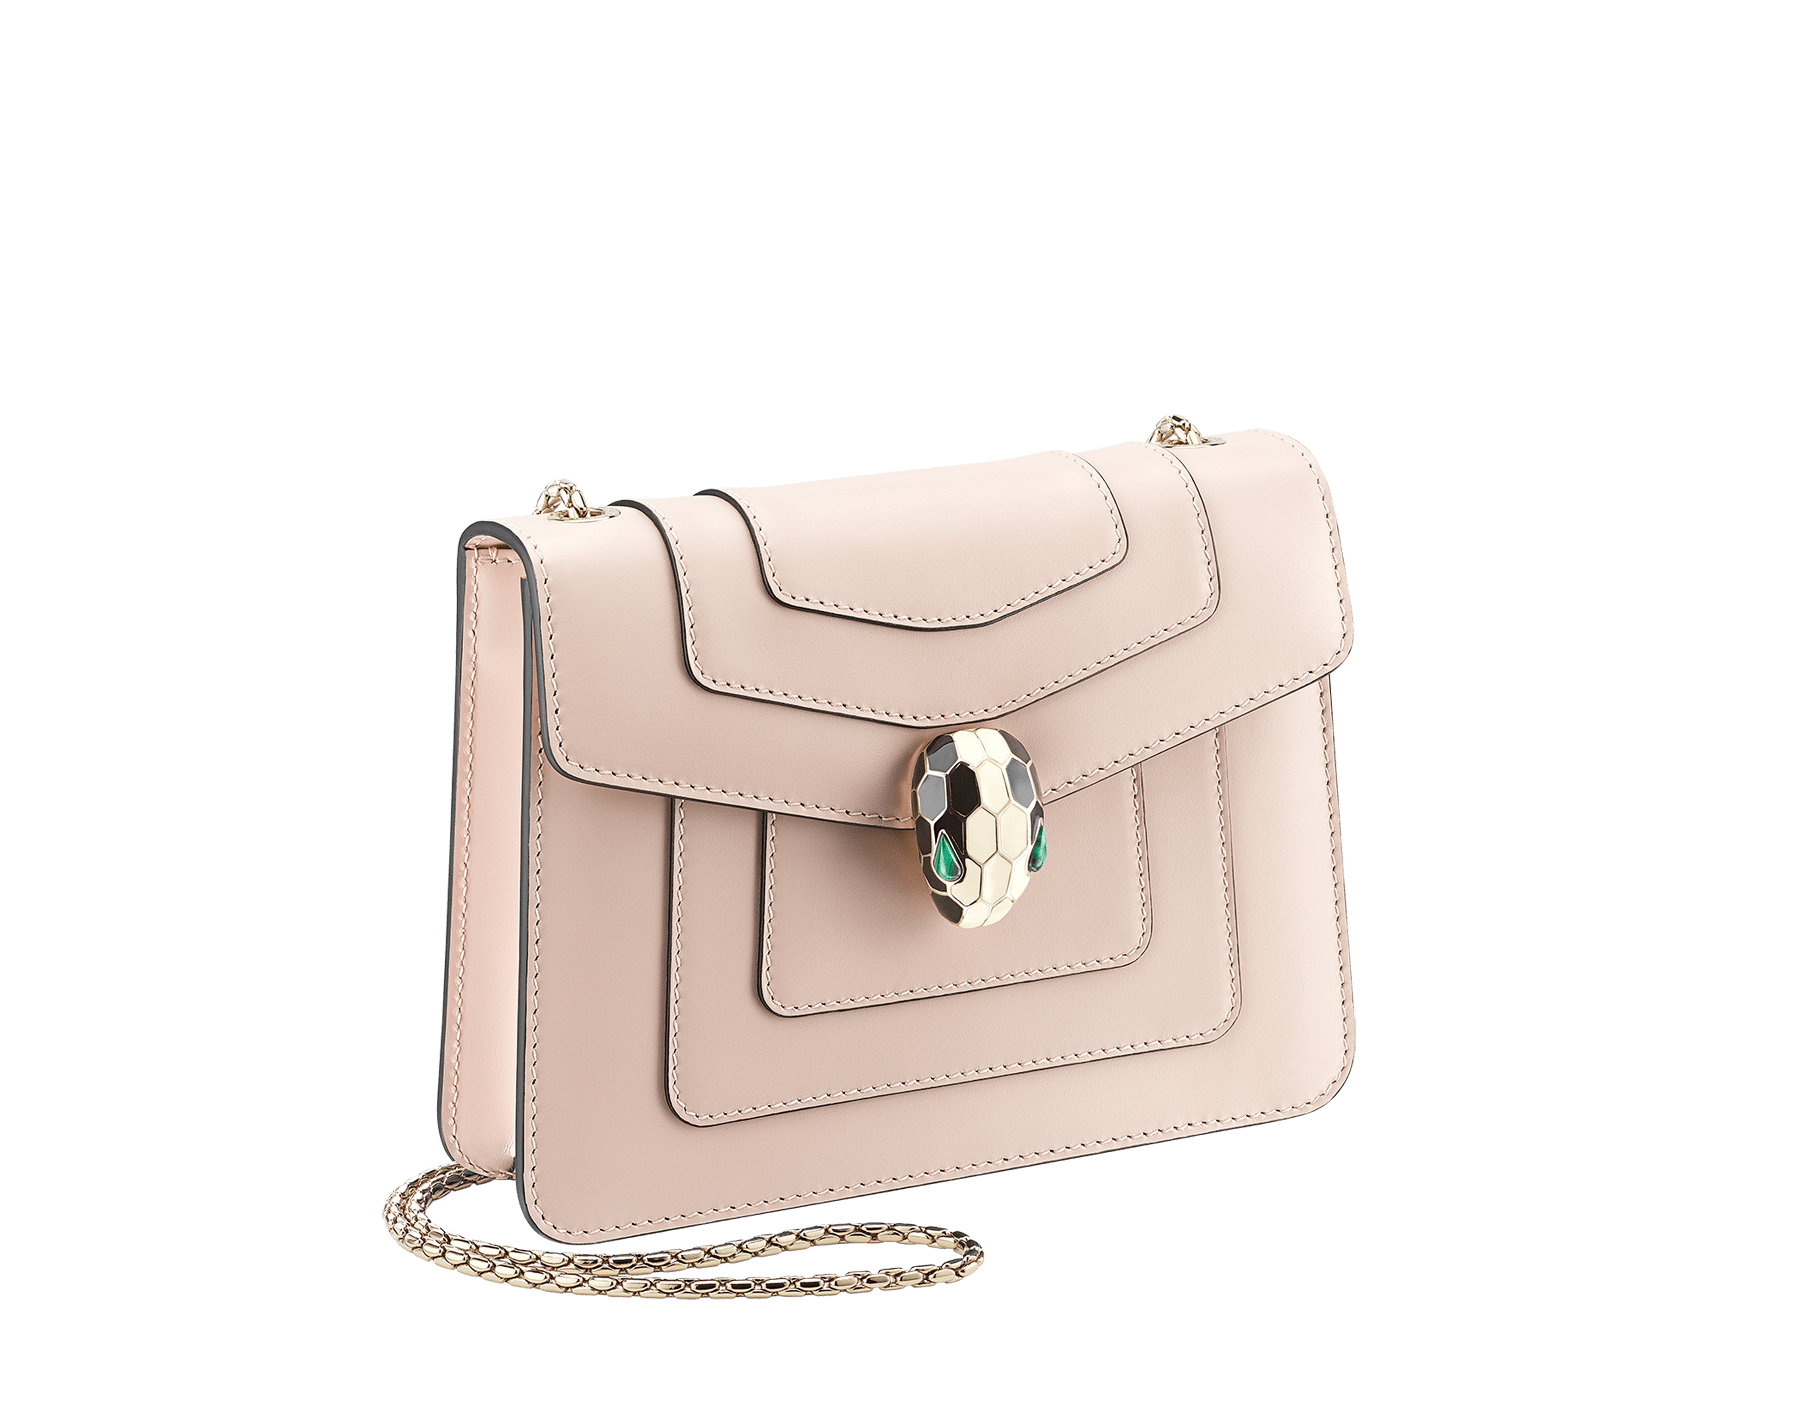 """Serpenti Forever"" crossbody bag in crystal rose calf leather. Iconic snakehead closure in light gold plated brass enriched with black and white enamel and green malachite eyes 287017 image 2"